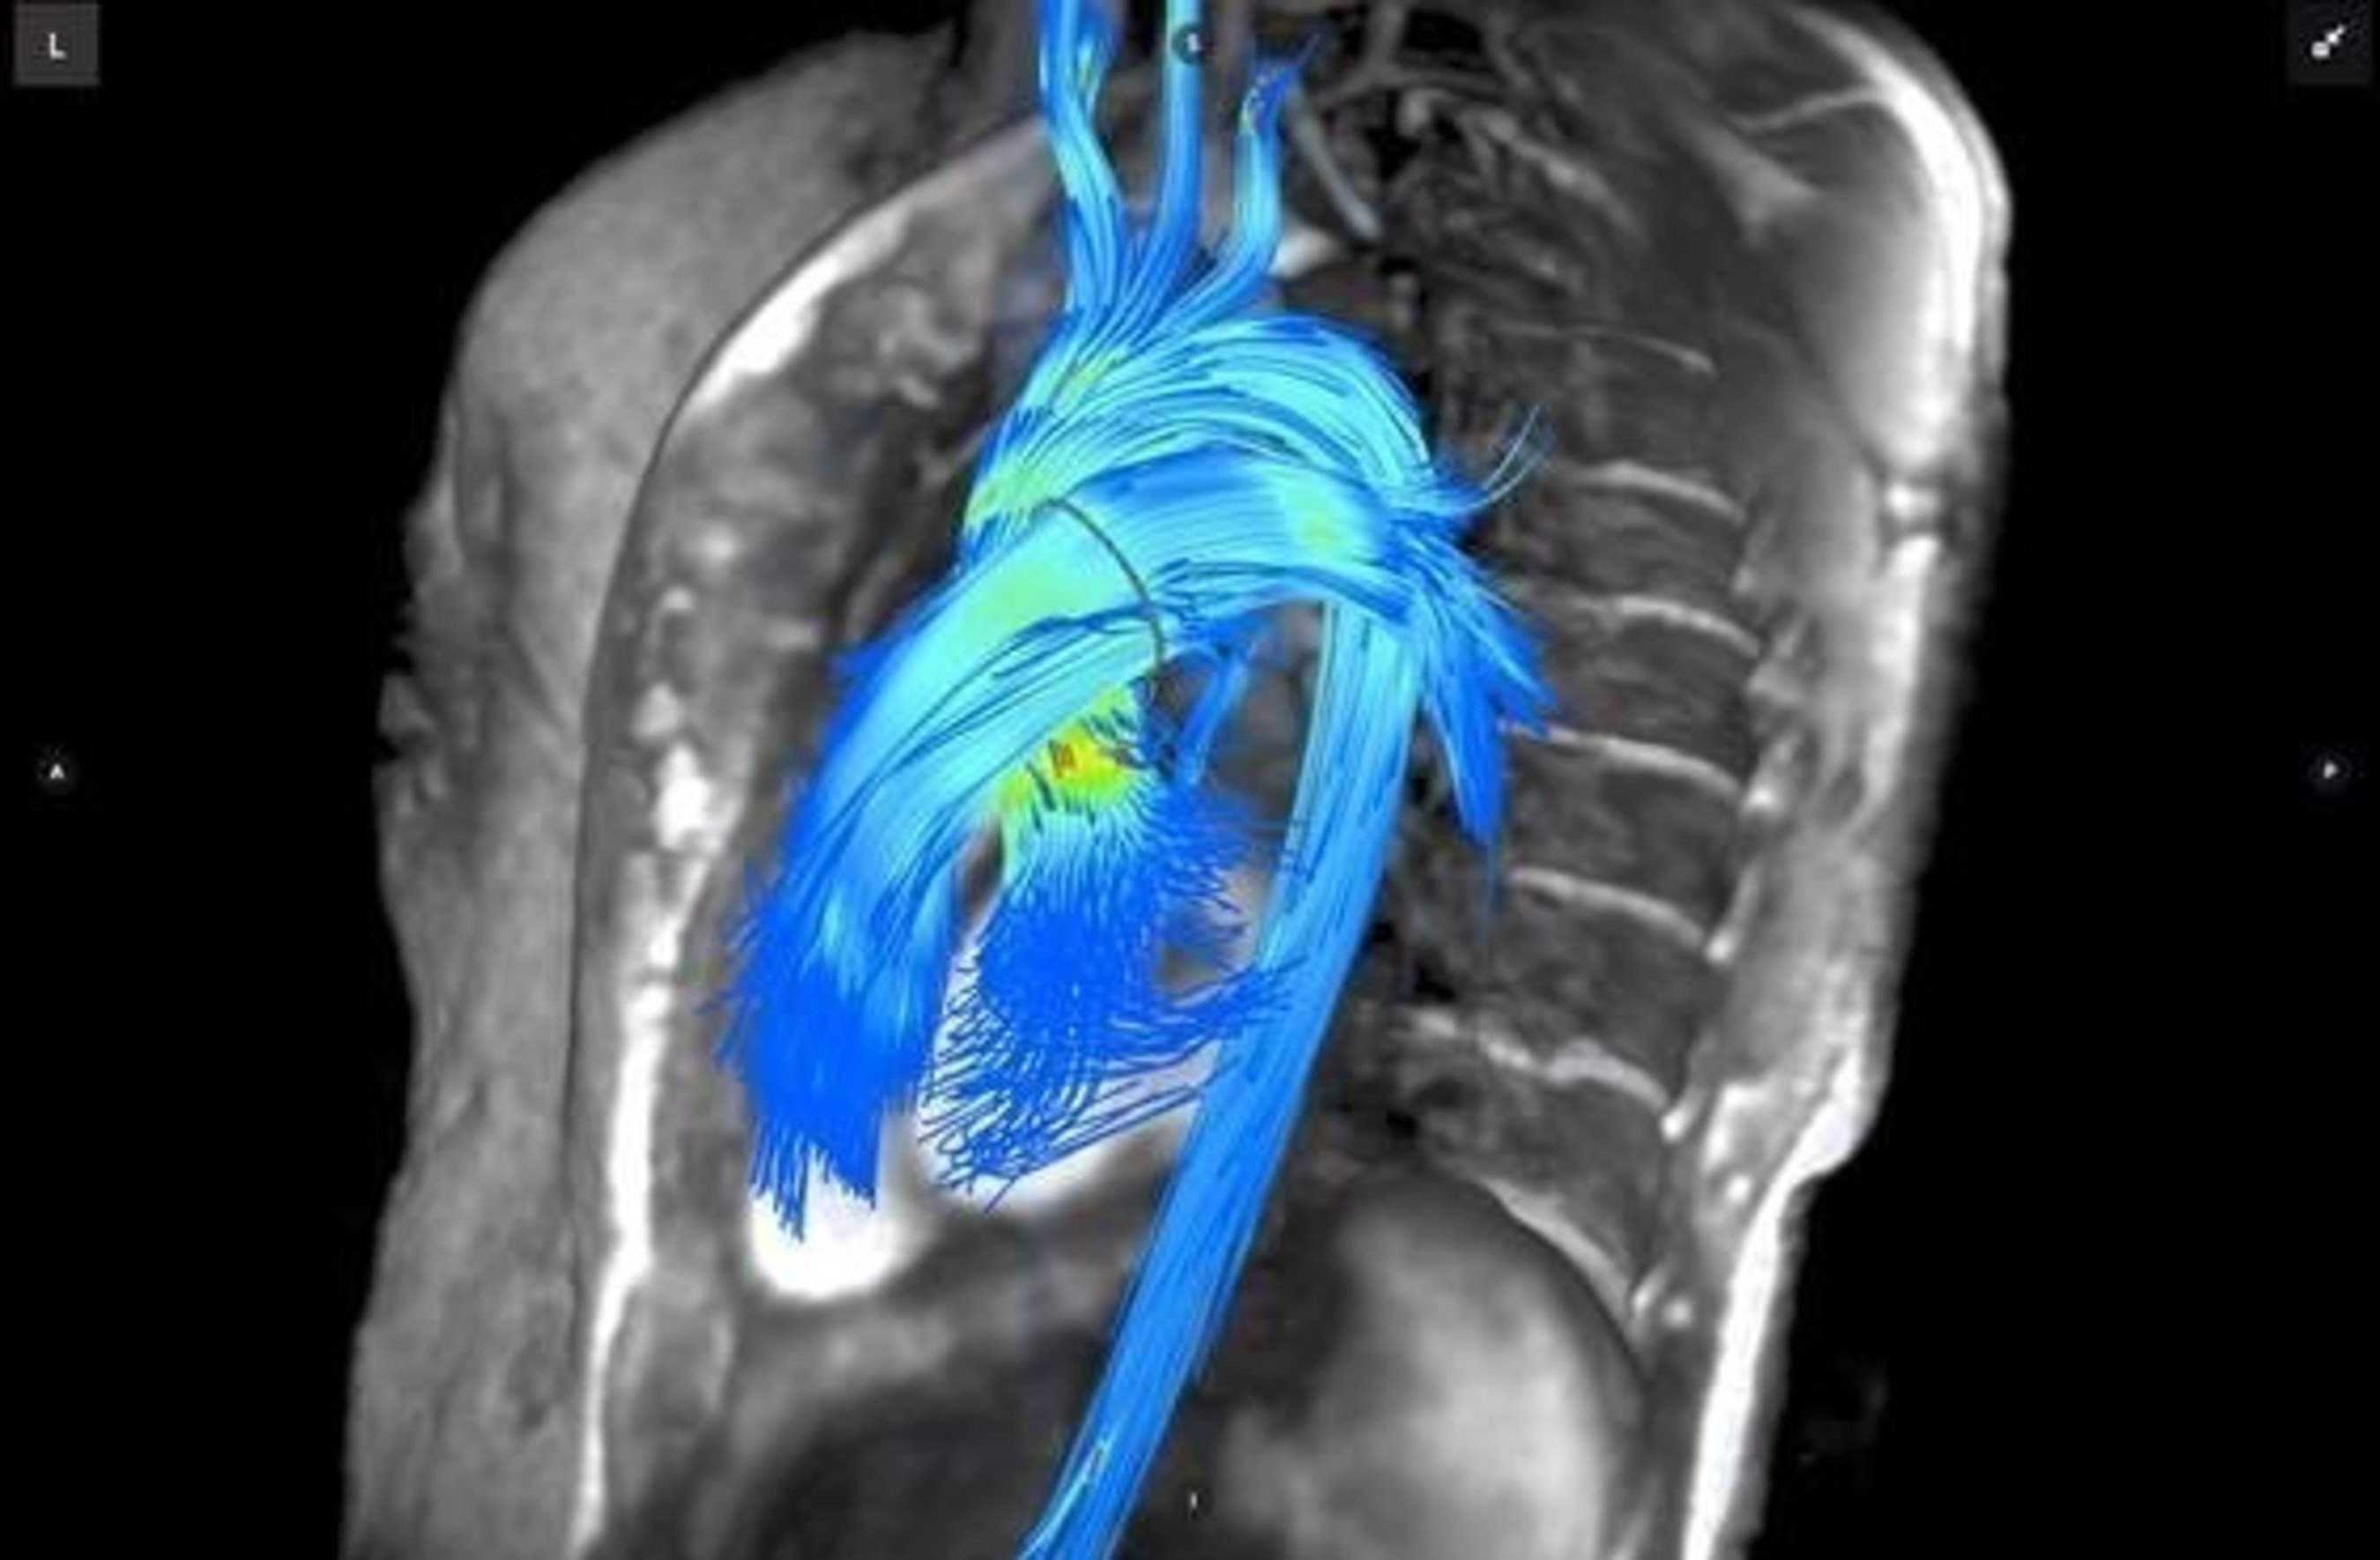 Arterys to Showcase New, FDA Cleared 4D Flow Software Platform at RSNA 2016